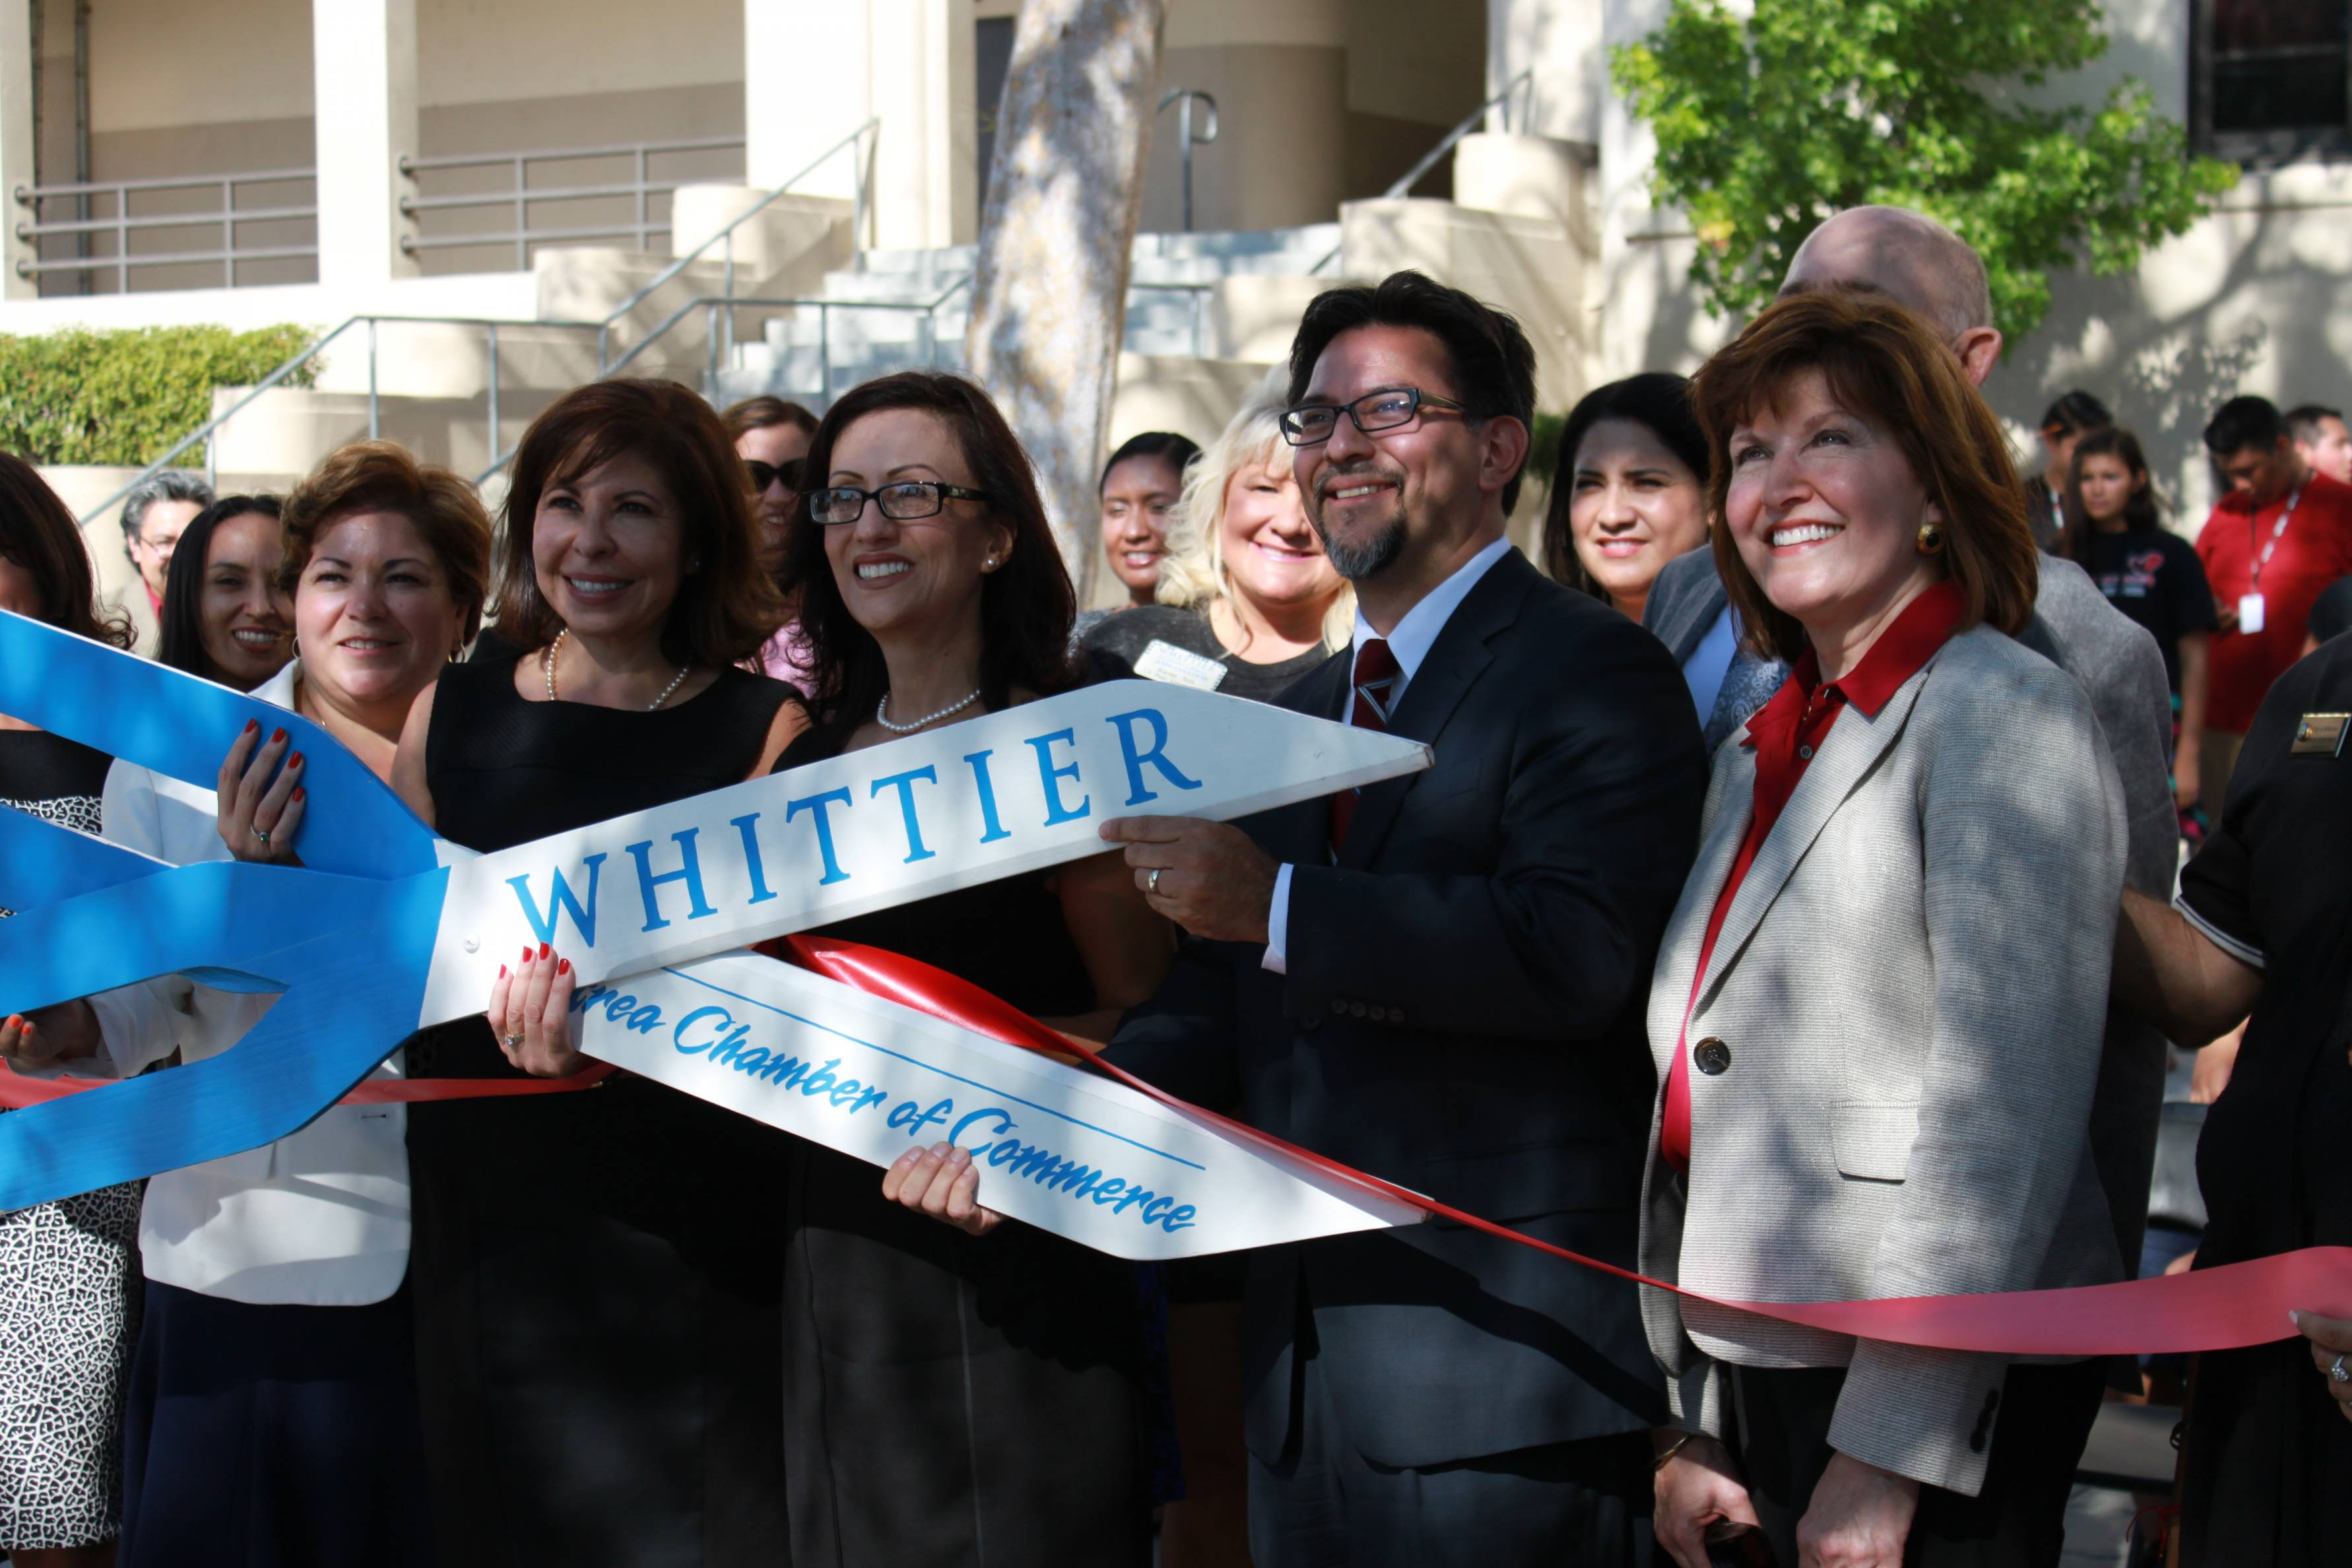 Whittier High School Celebrates Opening of Full-Time